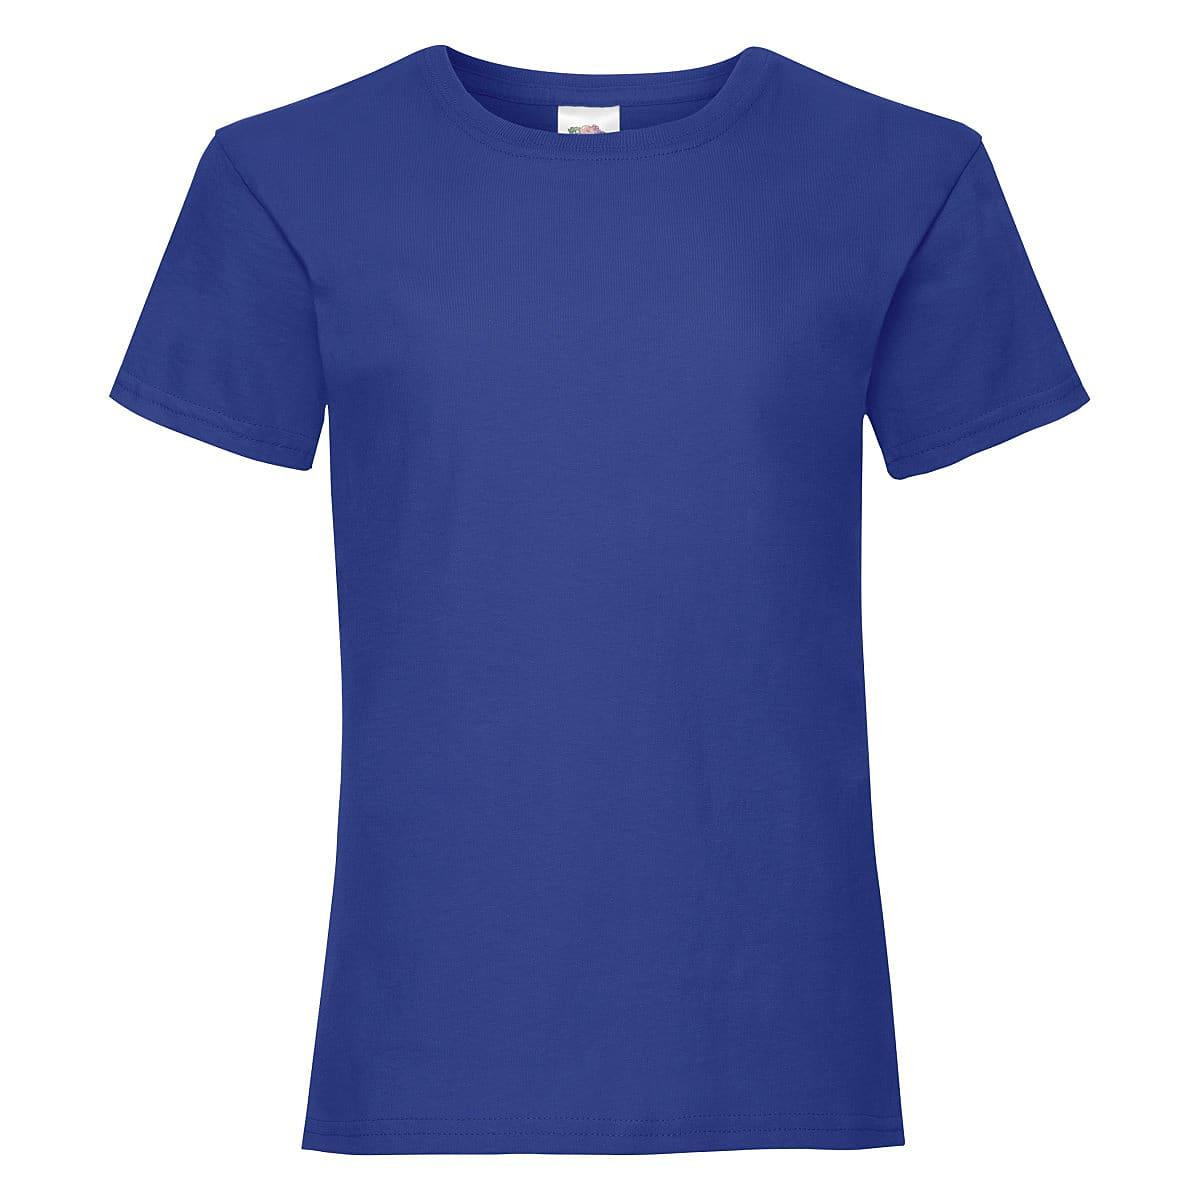 Fruit Of The Loom Girls Valueweight T-Shirt in Royal Blue (Product Code: 61005)